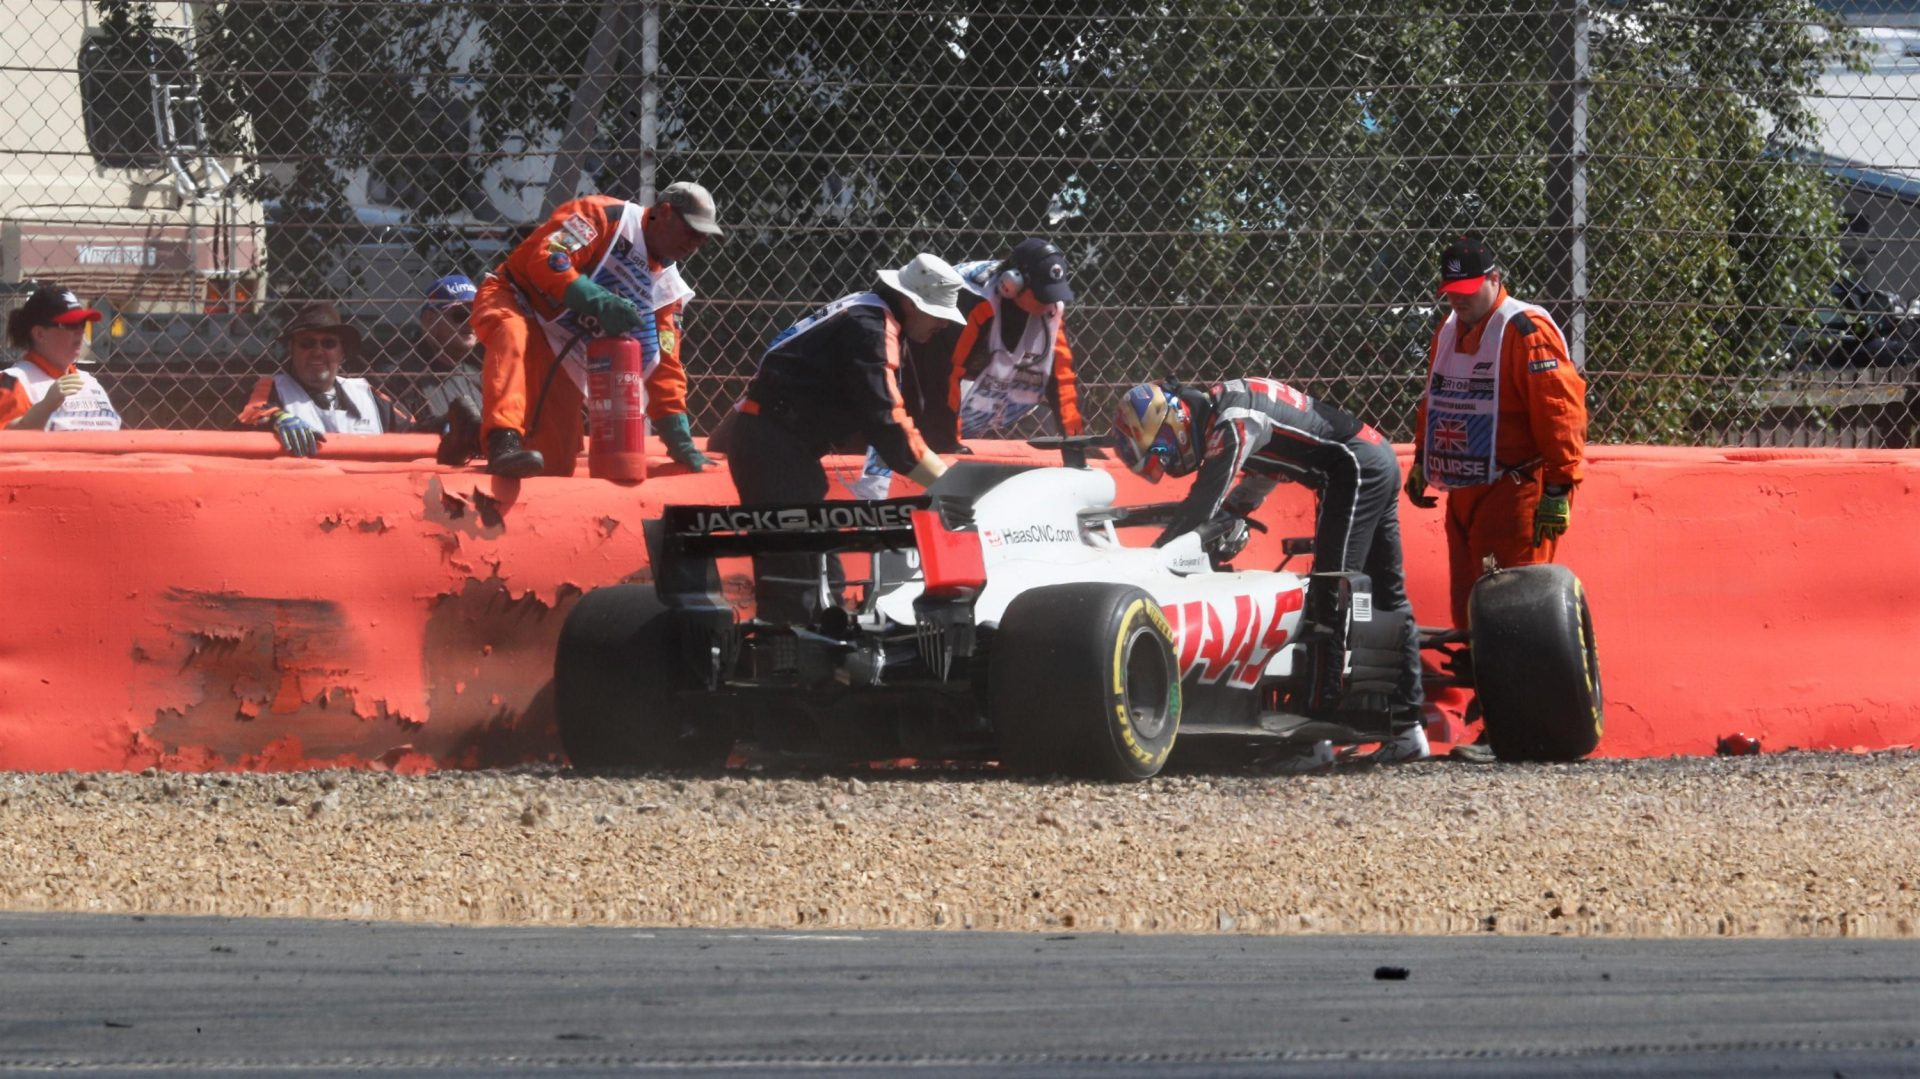 https://www.formula1.com/content/fom-website/en/latest/features/2018/7/gallery--the-best-images-from-great-britain/_jcr_content/featureContent/manual_gallery/image22.img.1920.medium.jpg/1530874807332.jpg